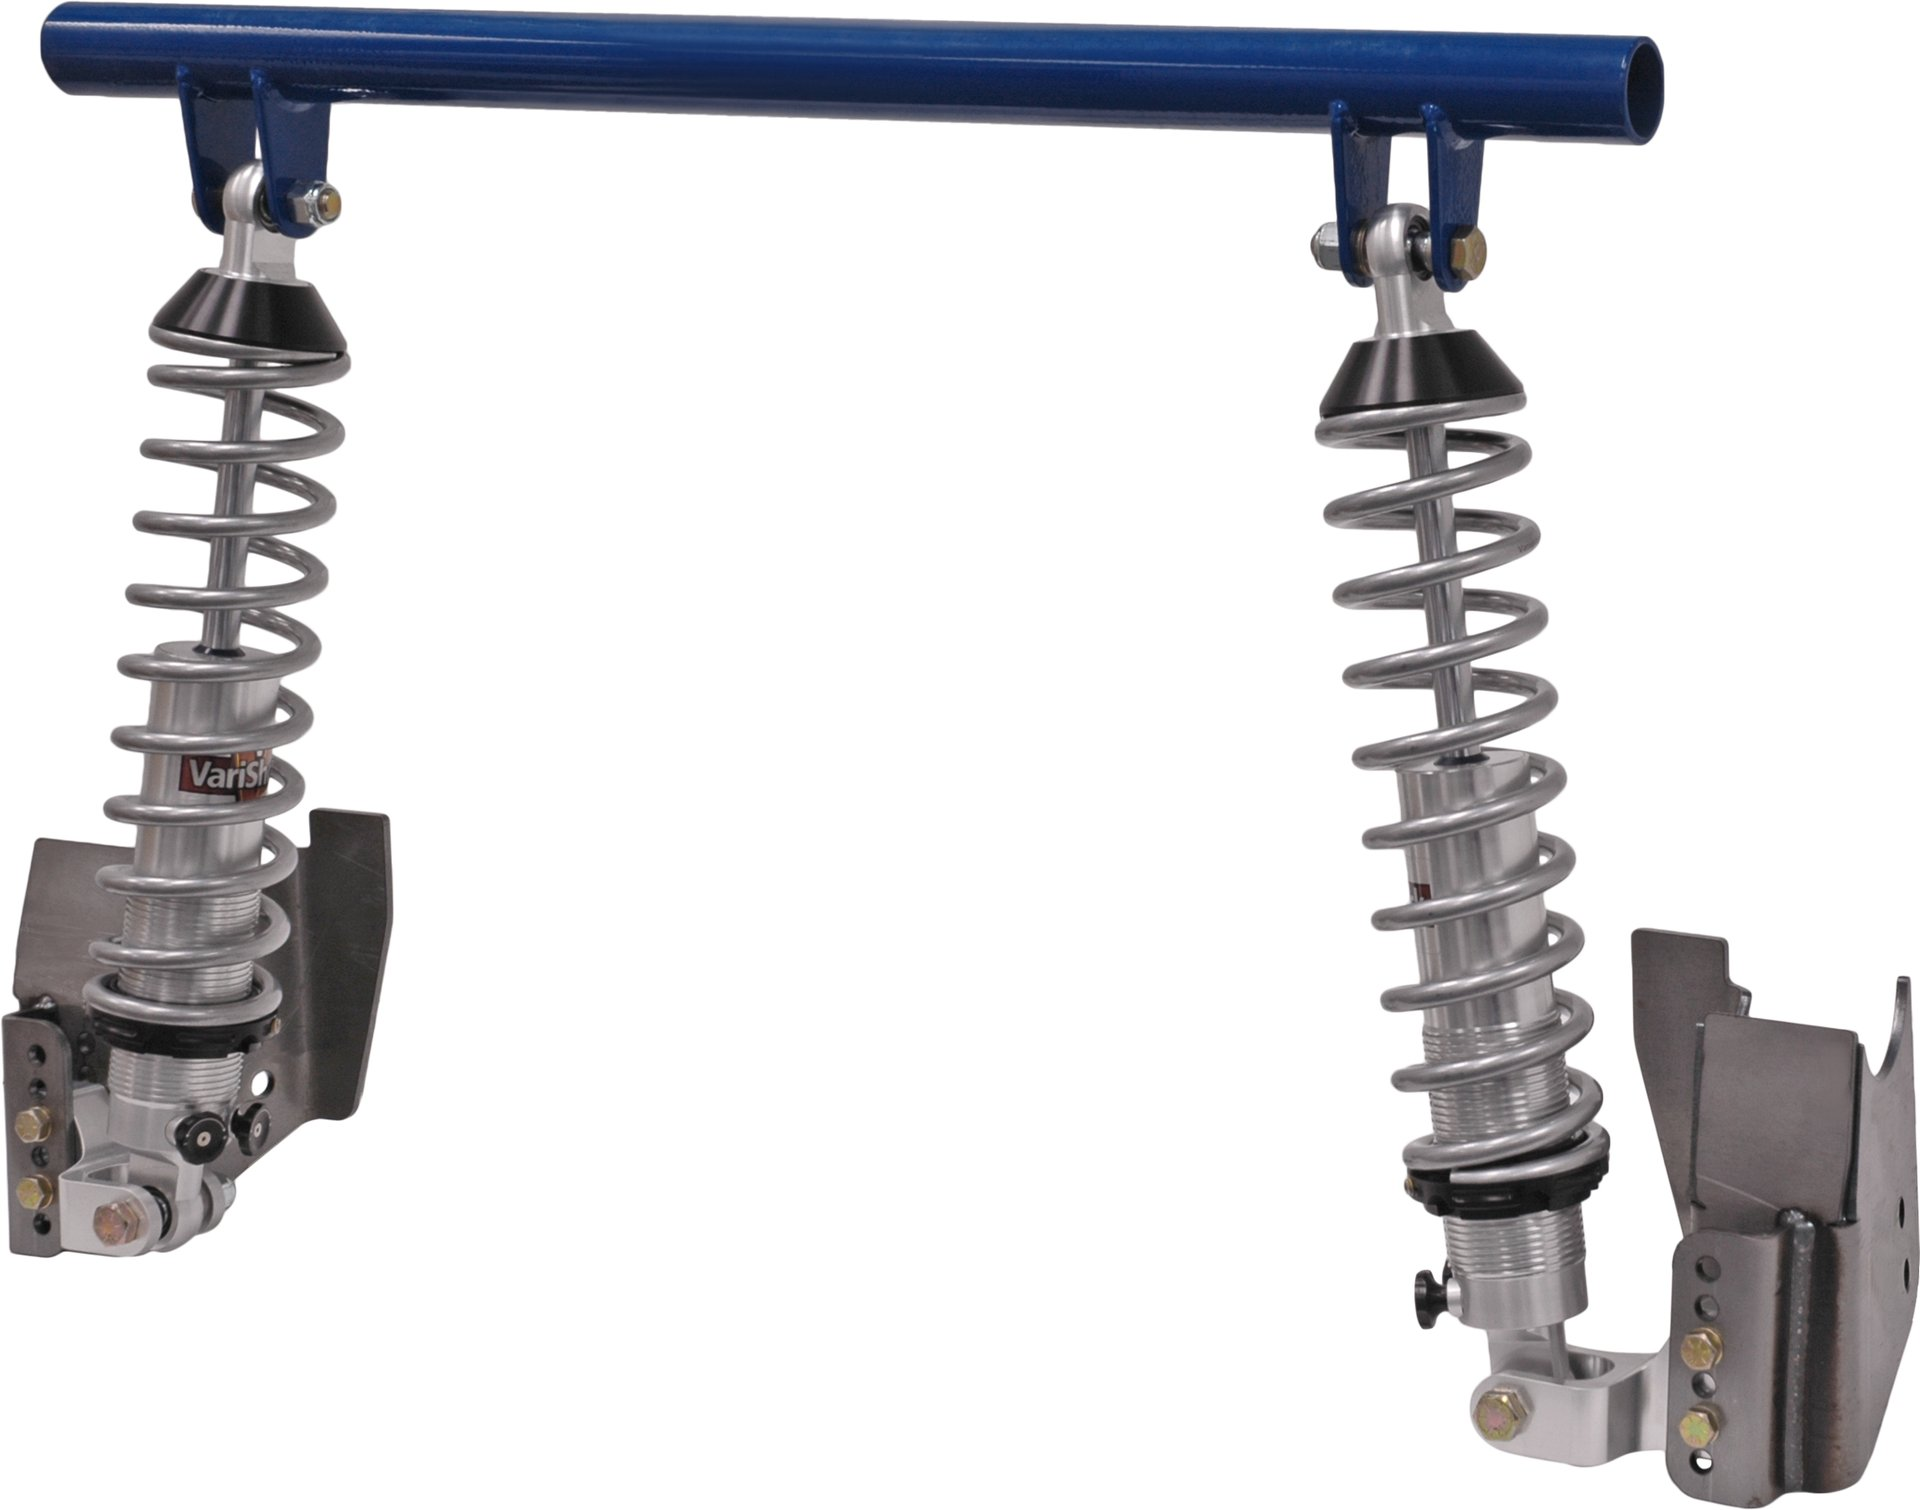 Coilover Specs for 4-Link Conversion ? | S-10 Forum